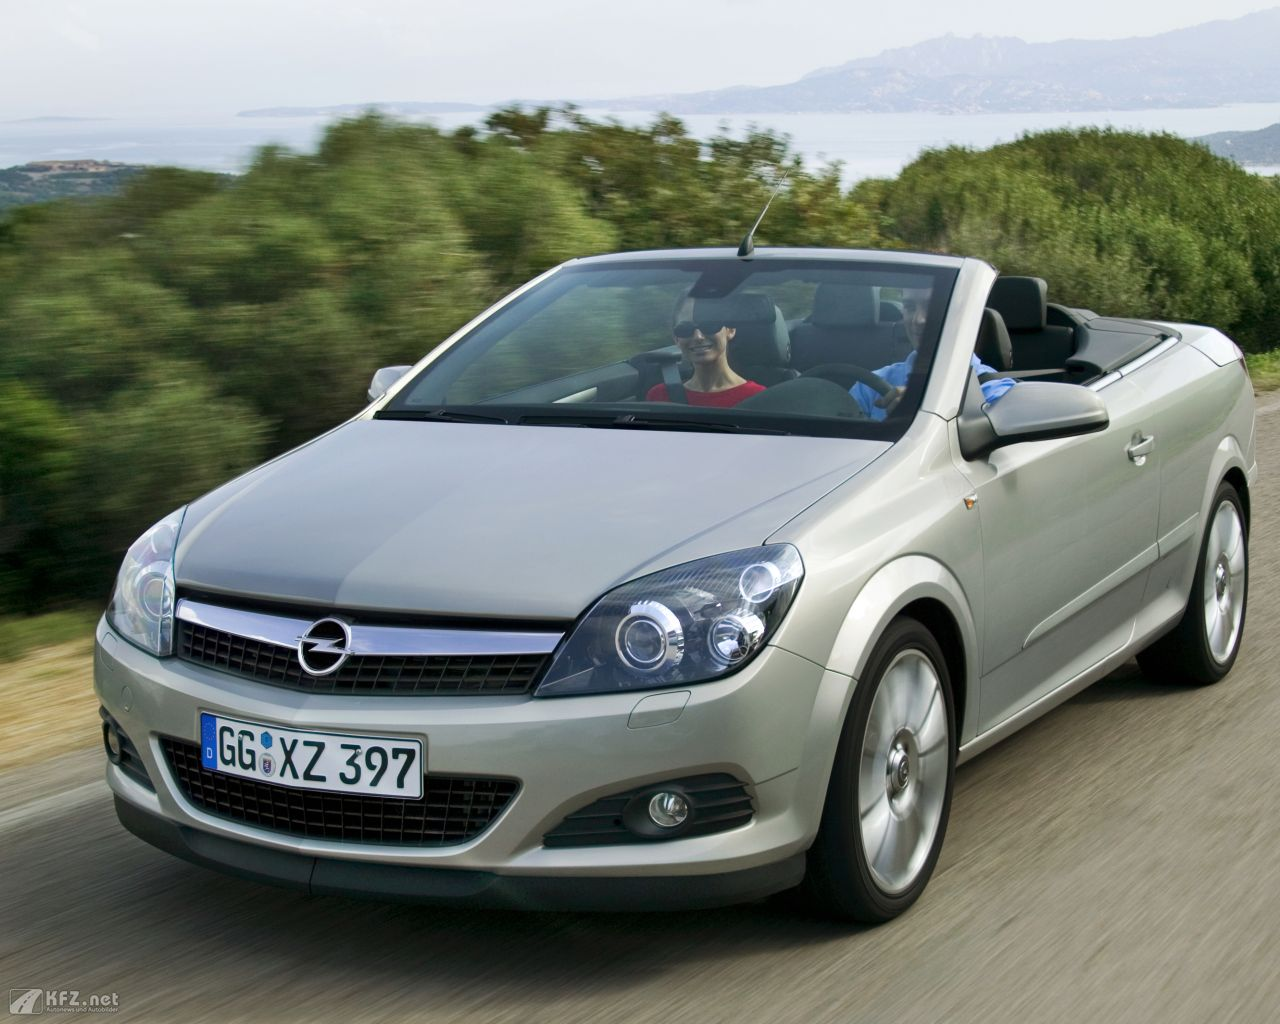 opel-astra-twintop-1280x1024-11